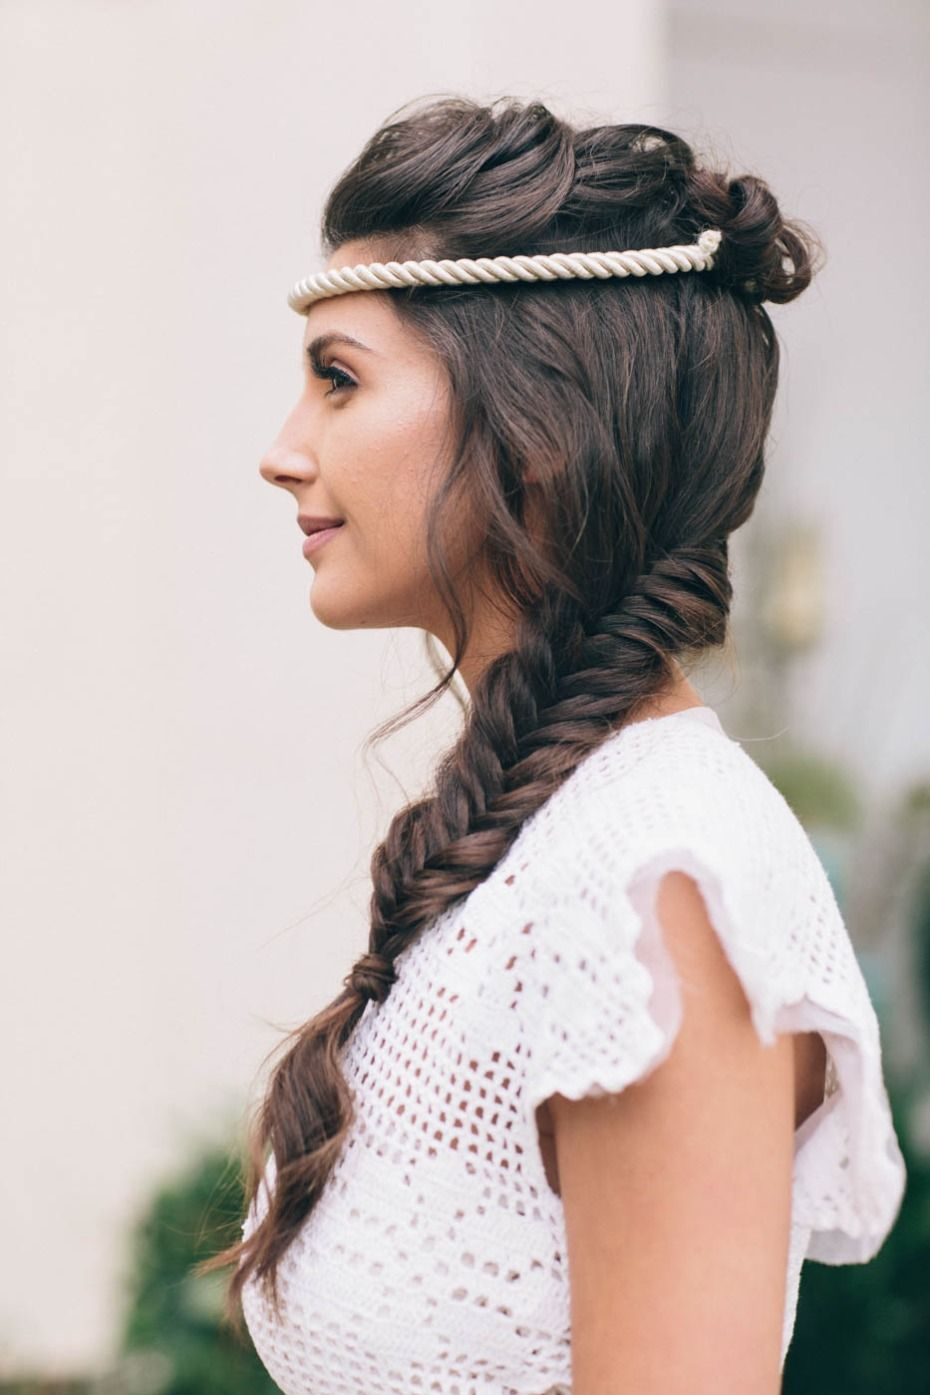 Wonder Woman Hair Style : wonder, woman, style, Wonder, Woman, These, Wedding, Ideas, Amazon, Alley!, Styles,, Short, Styles, Easy,